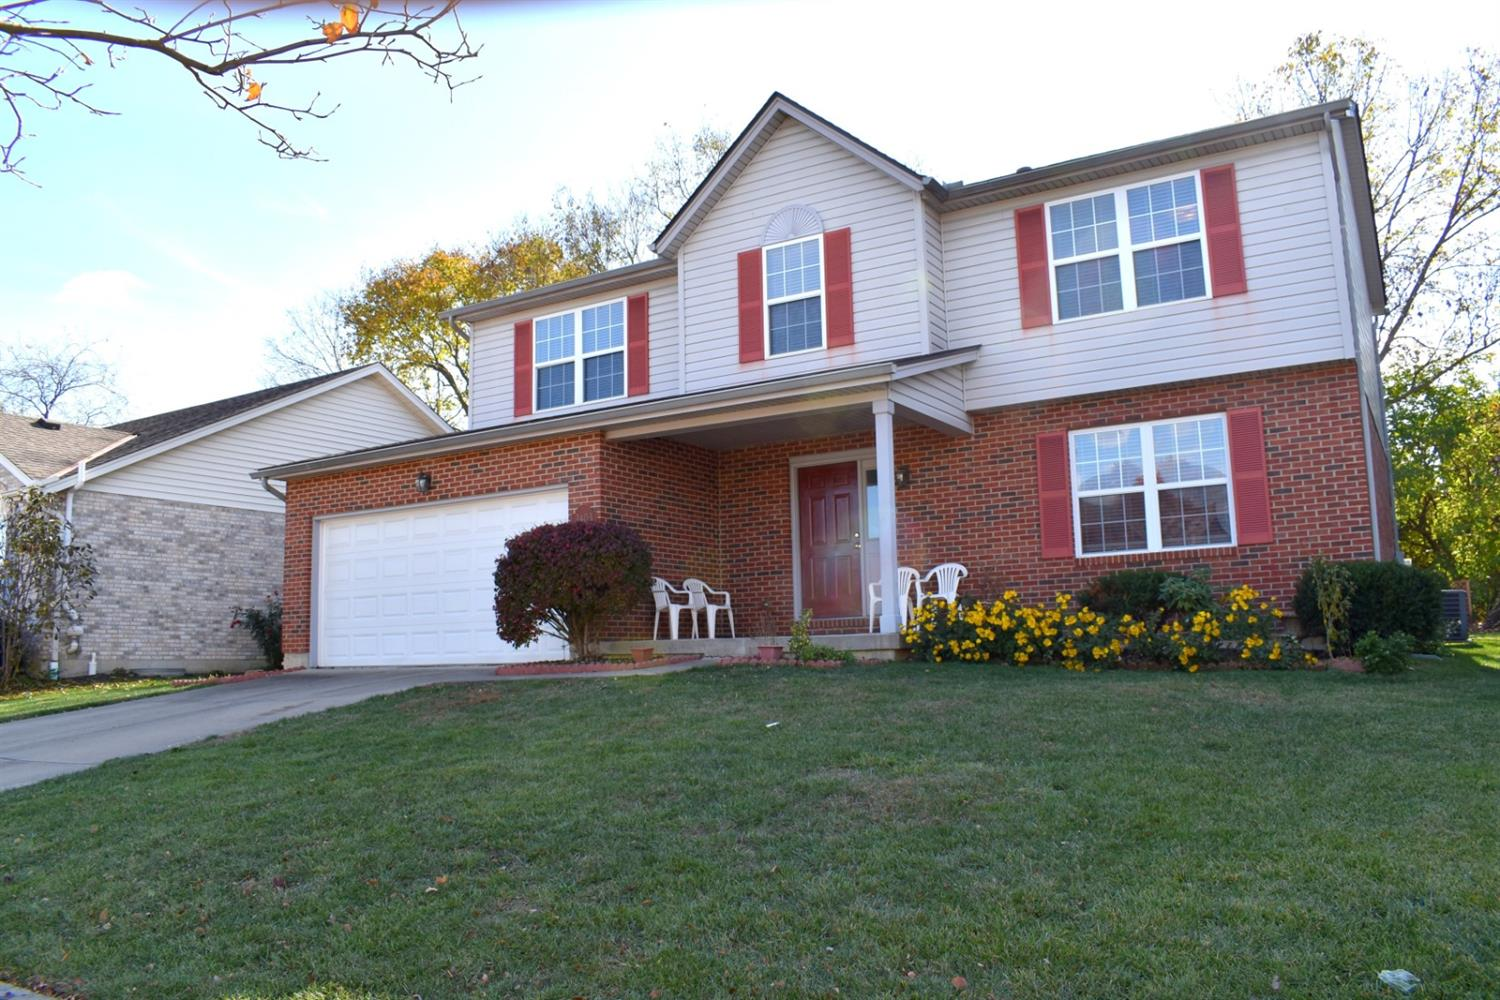 Property for sale at 7403 Wm Hensley Drive, Fairfield,  Ohio 45014